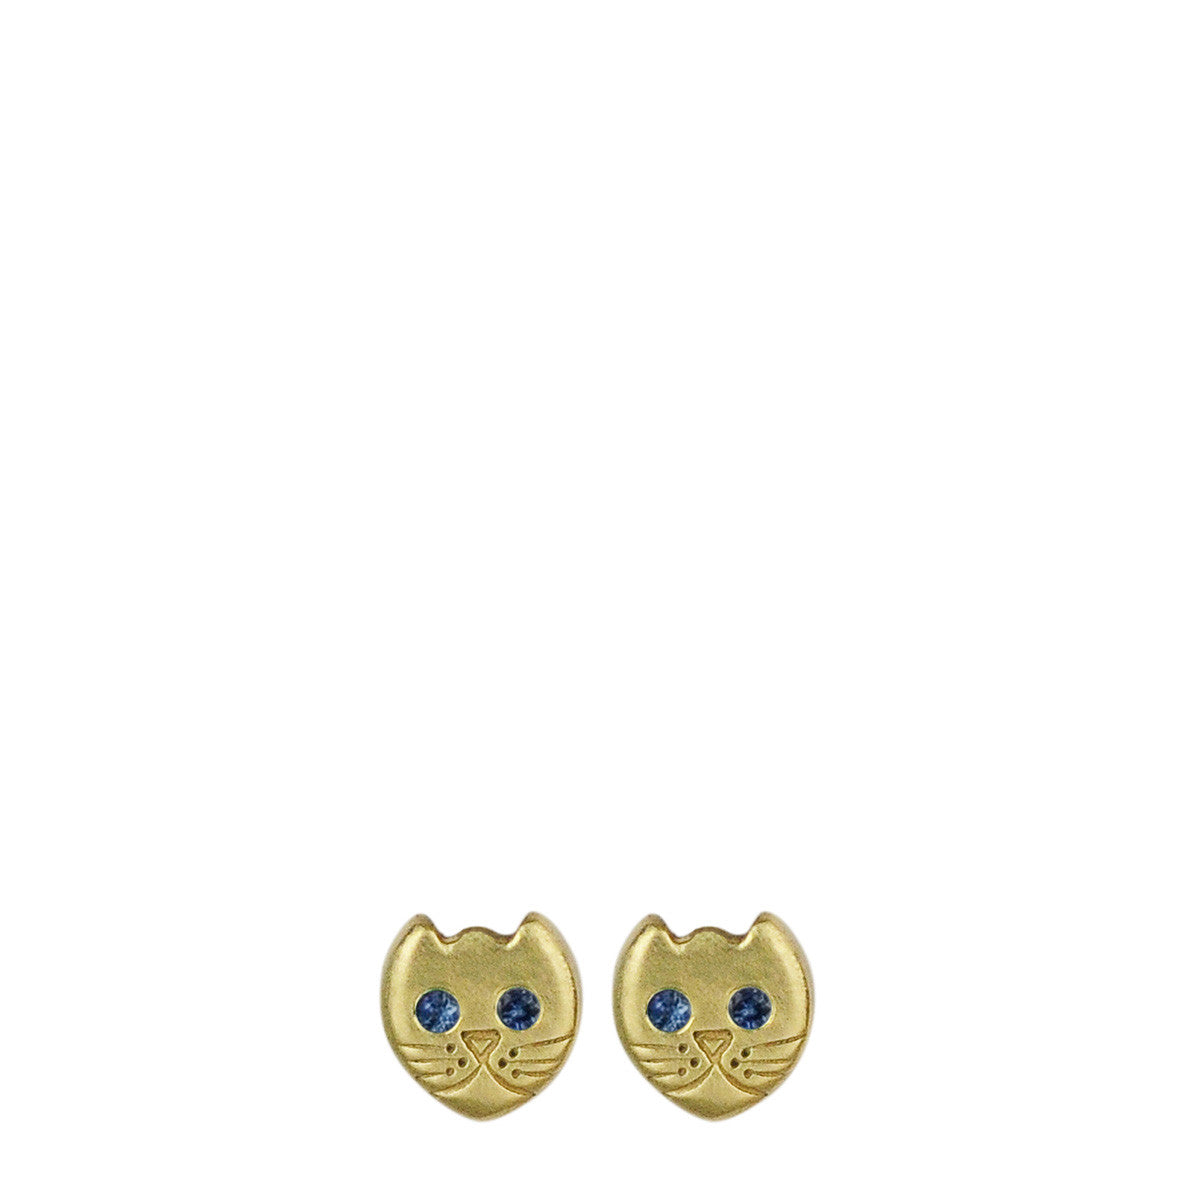 18K Gold Tiny Kitten Stud Earrings with Sapphire Eyes